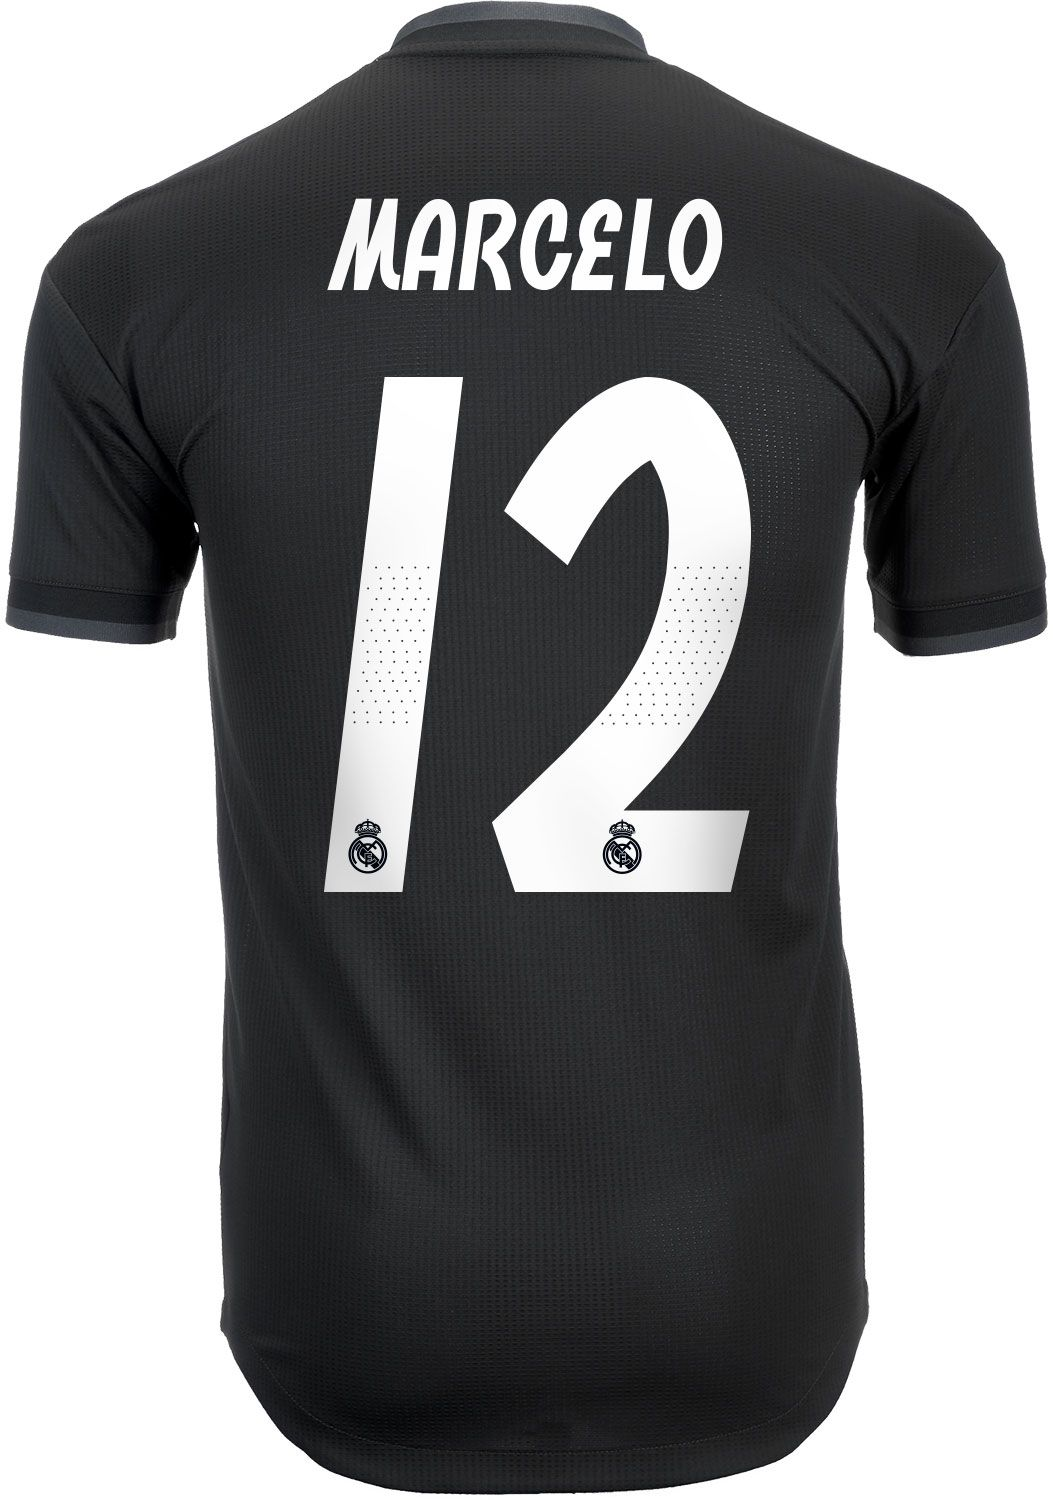 9b340b3302d 2018/19 adidas Marcelo Real Madrid authentic Away Jersey. Buy it from  soccerpro.com